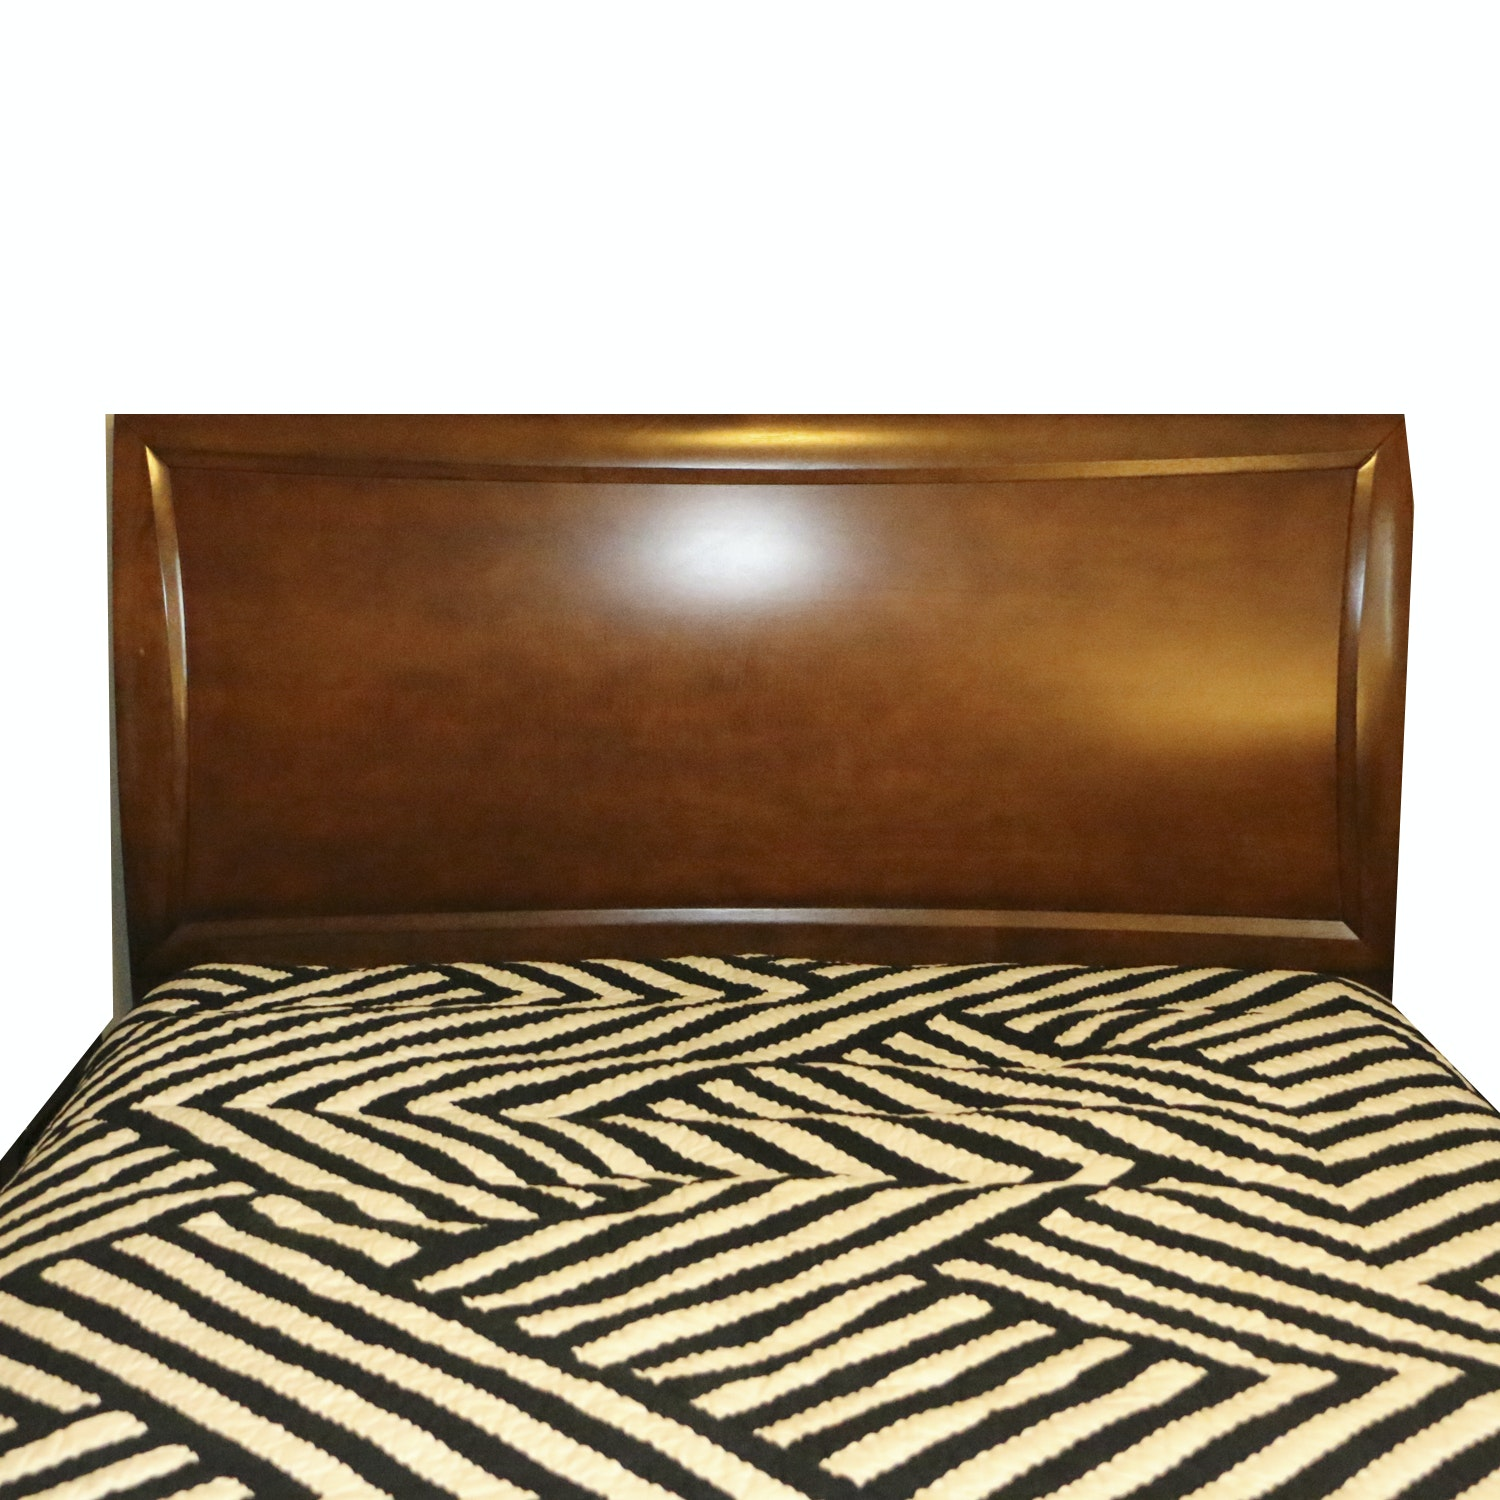 Wooden Full Size Headboard, 21st Century